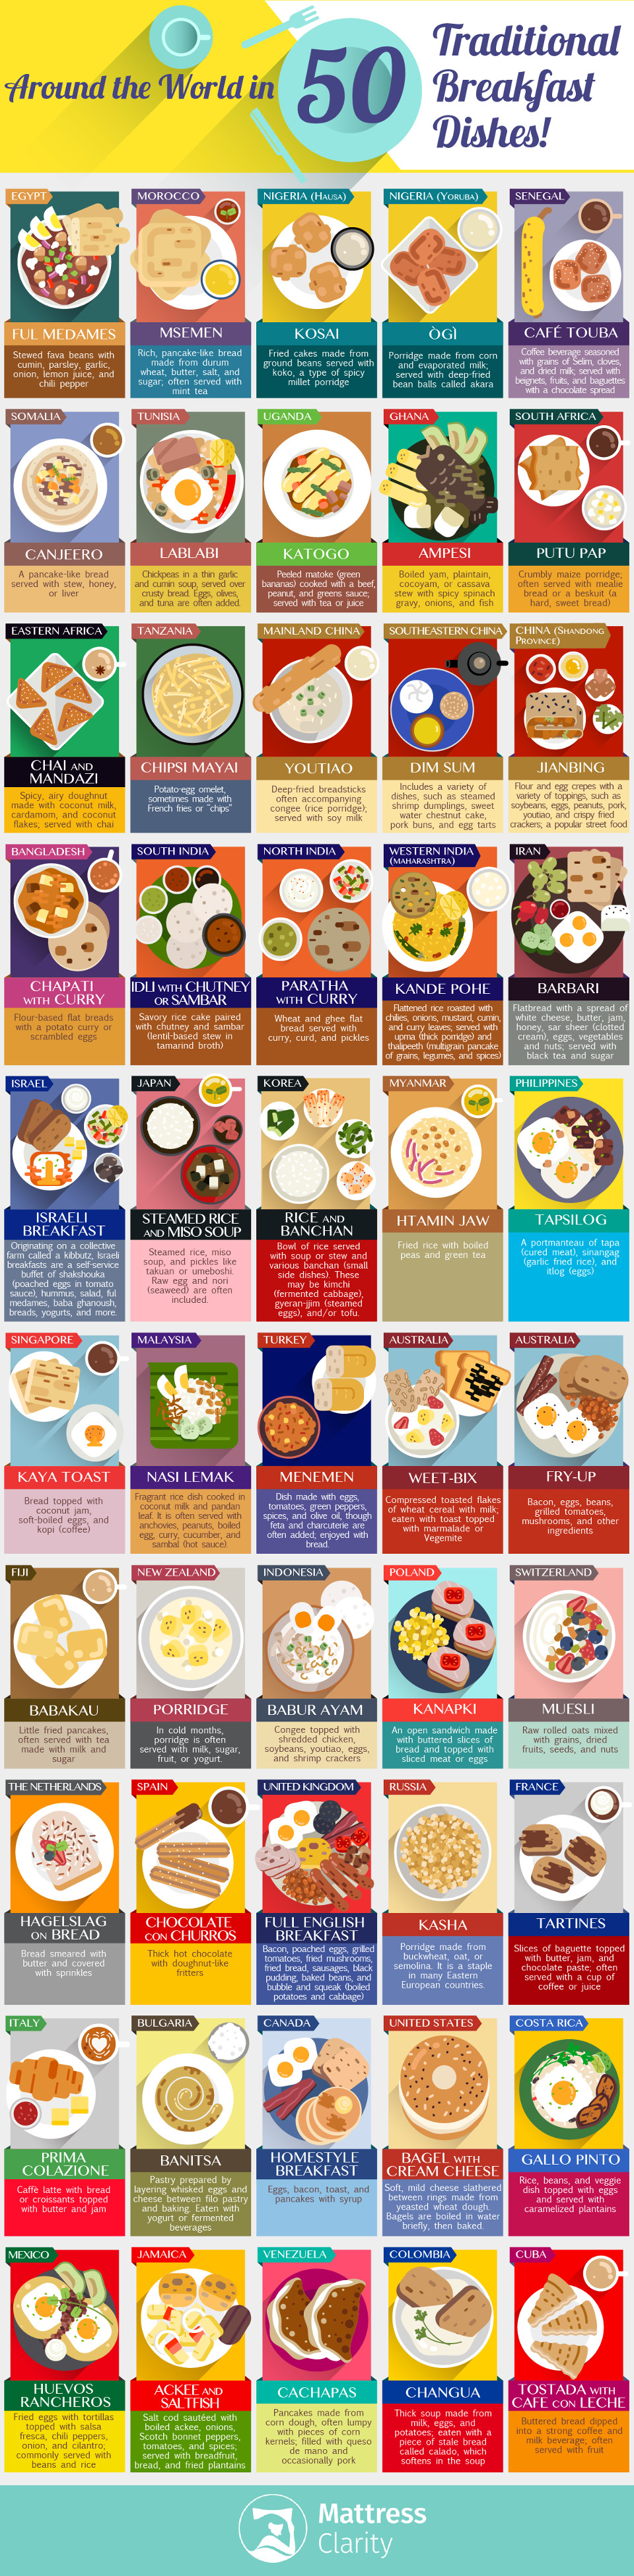 Breakfast Buffet: Global Spread of 50 Traditional Breakfast Dishes - Infographic